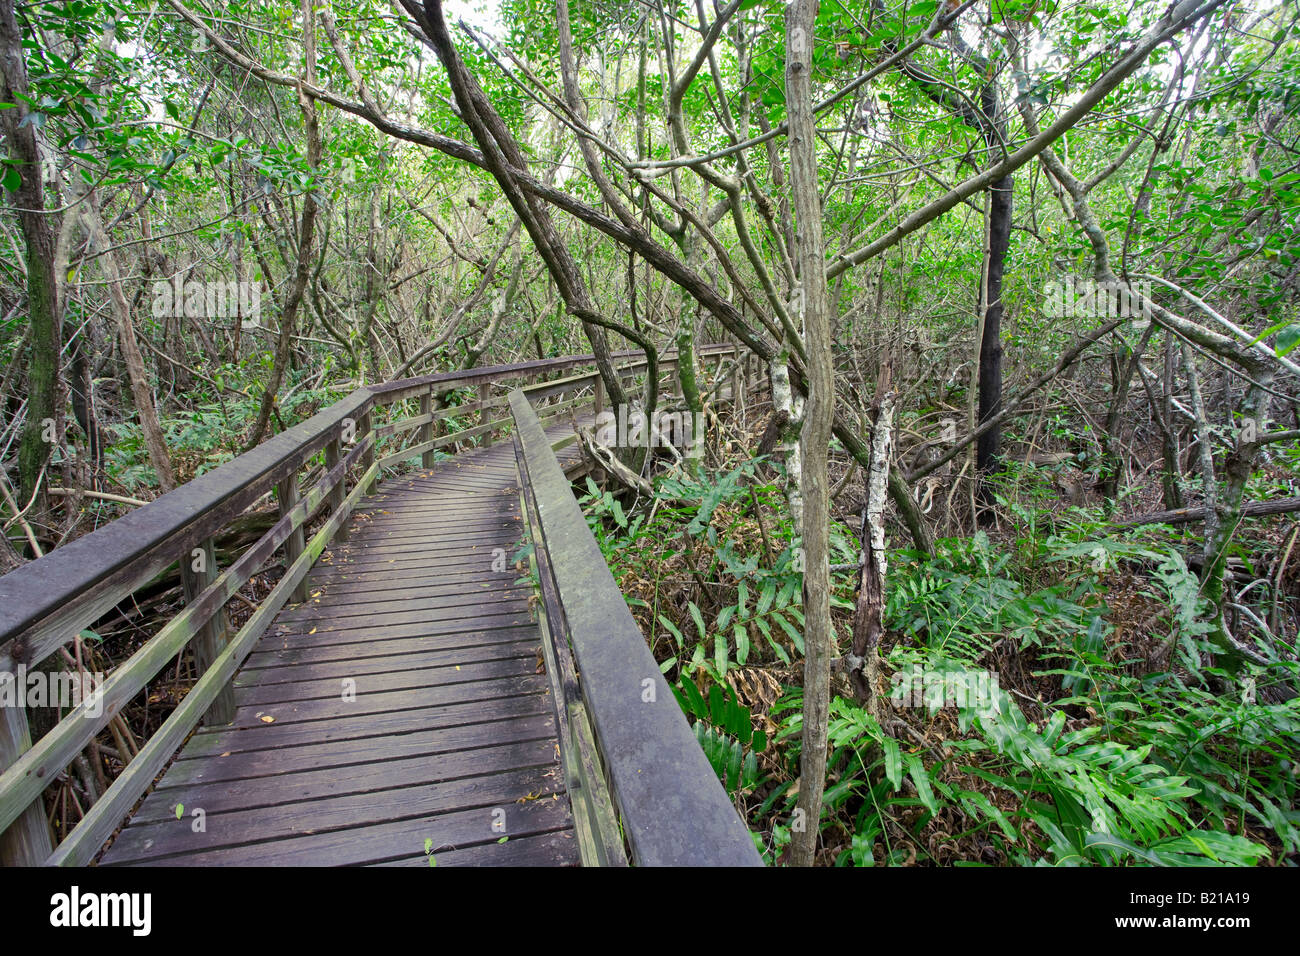 walkway through everglades national park forest in Florida, USA - Stock Image